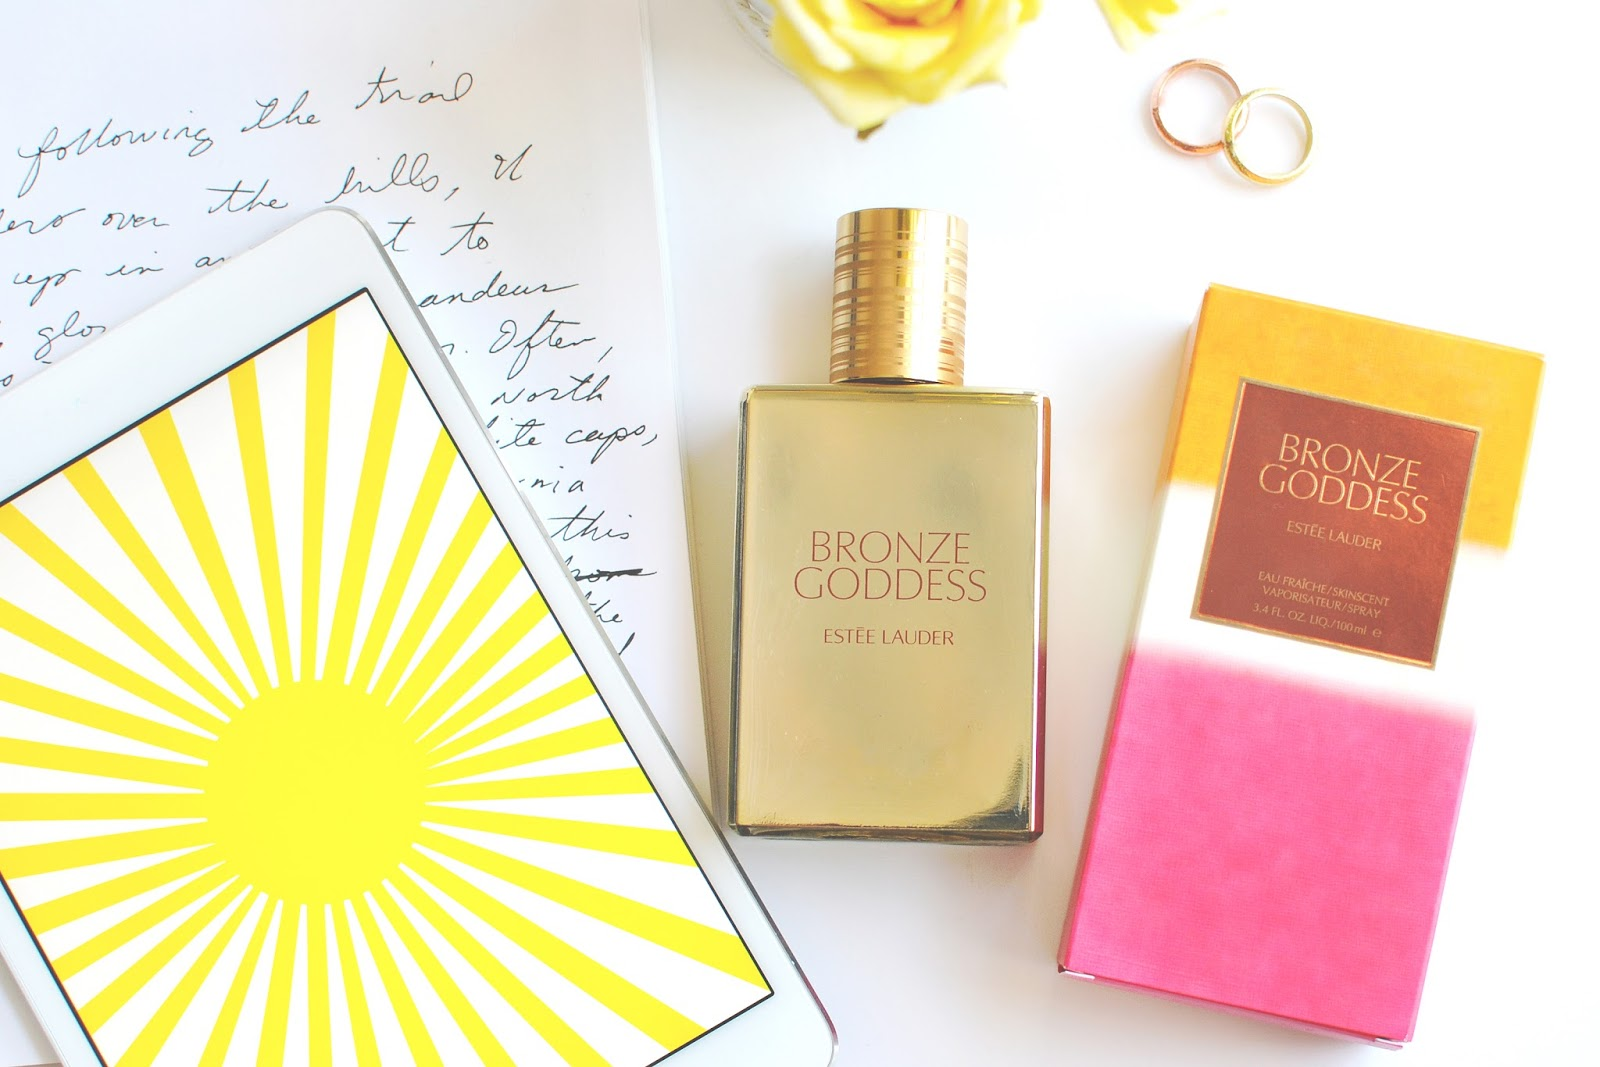 A review of bronze goddess perfume by Estee Lauder